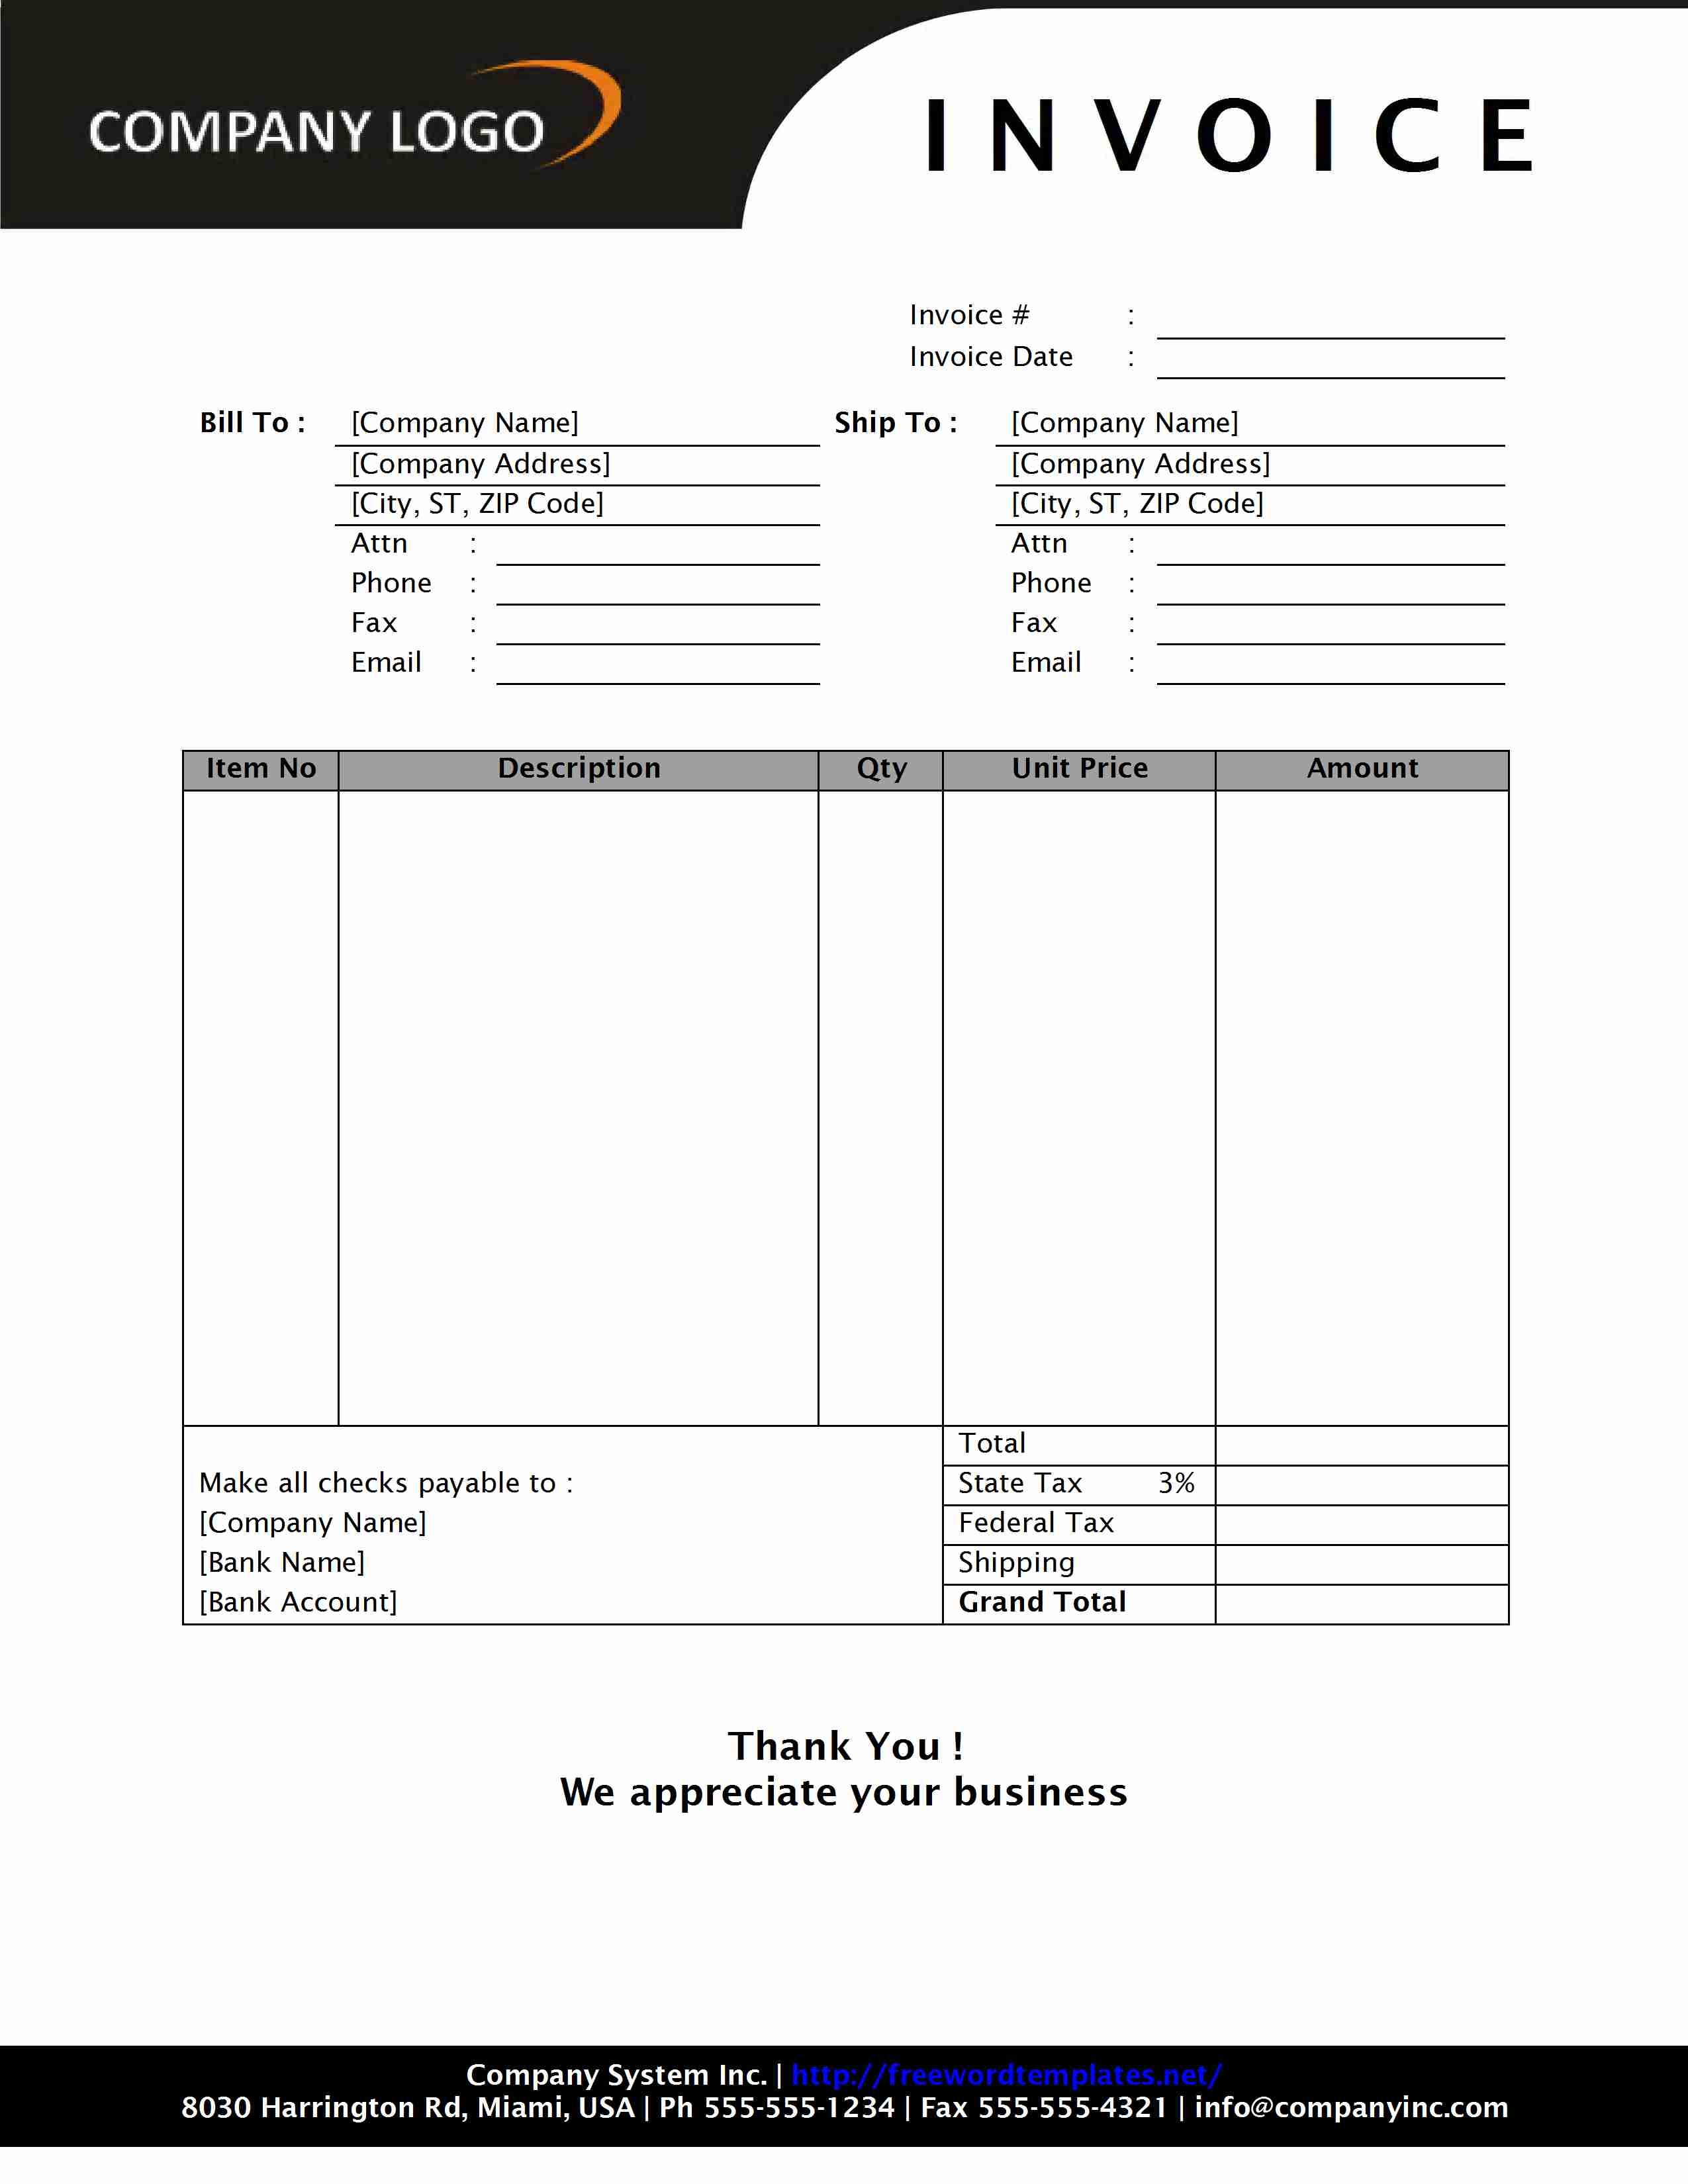 sales invoice format photo simple sales invoice template images 2550 X 3300